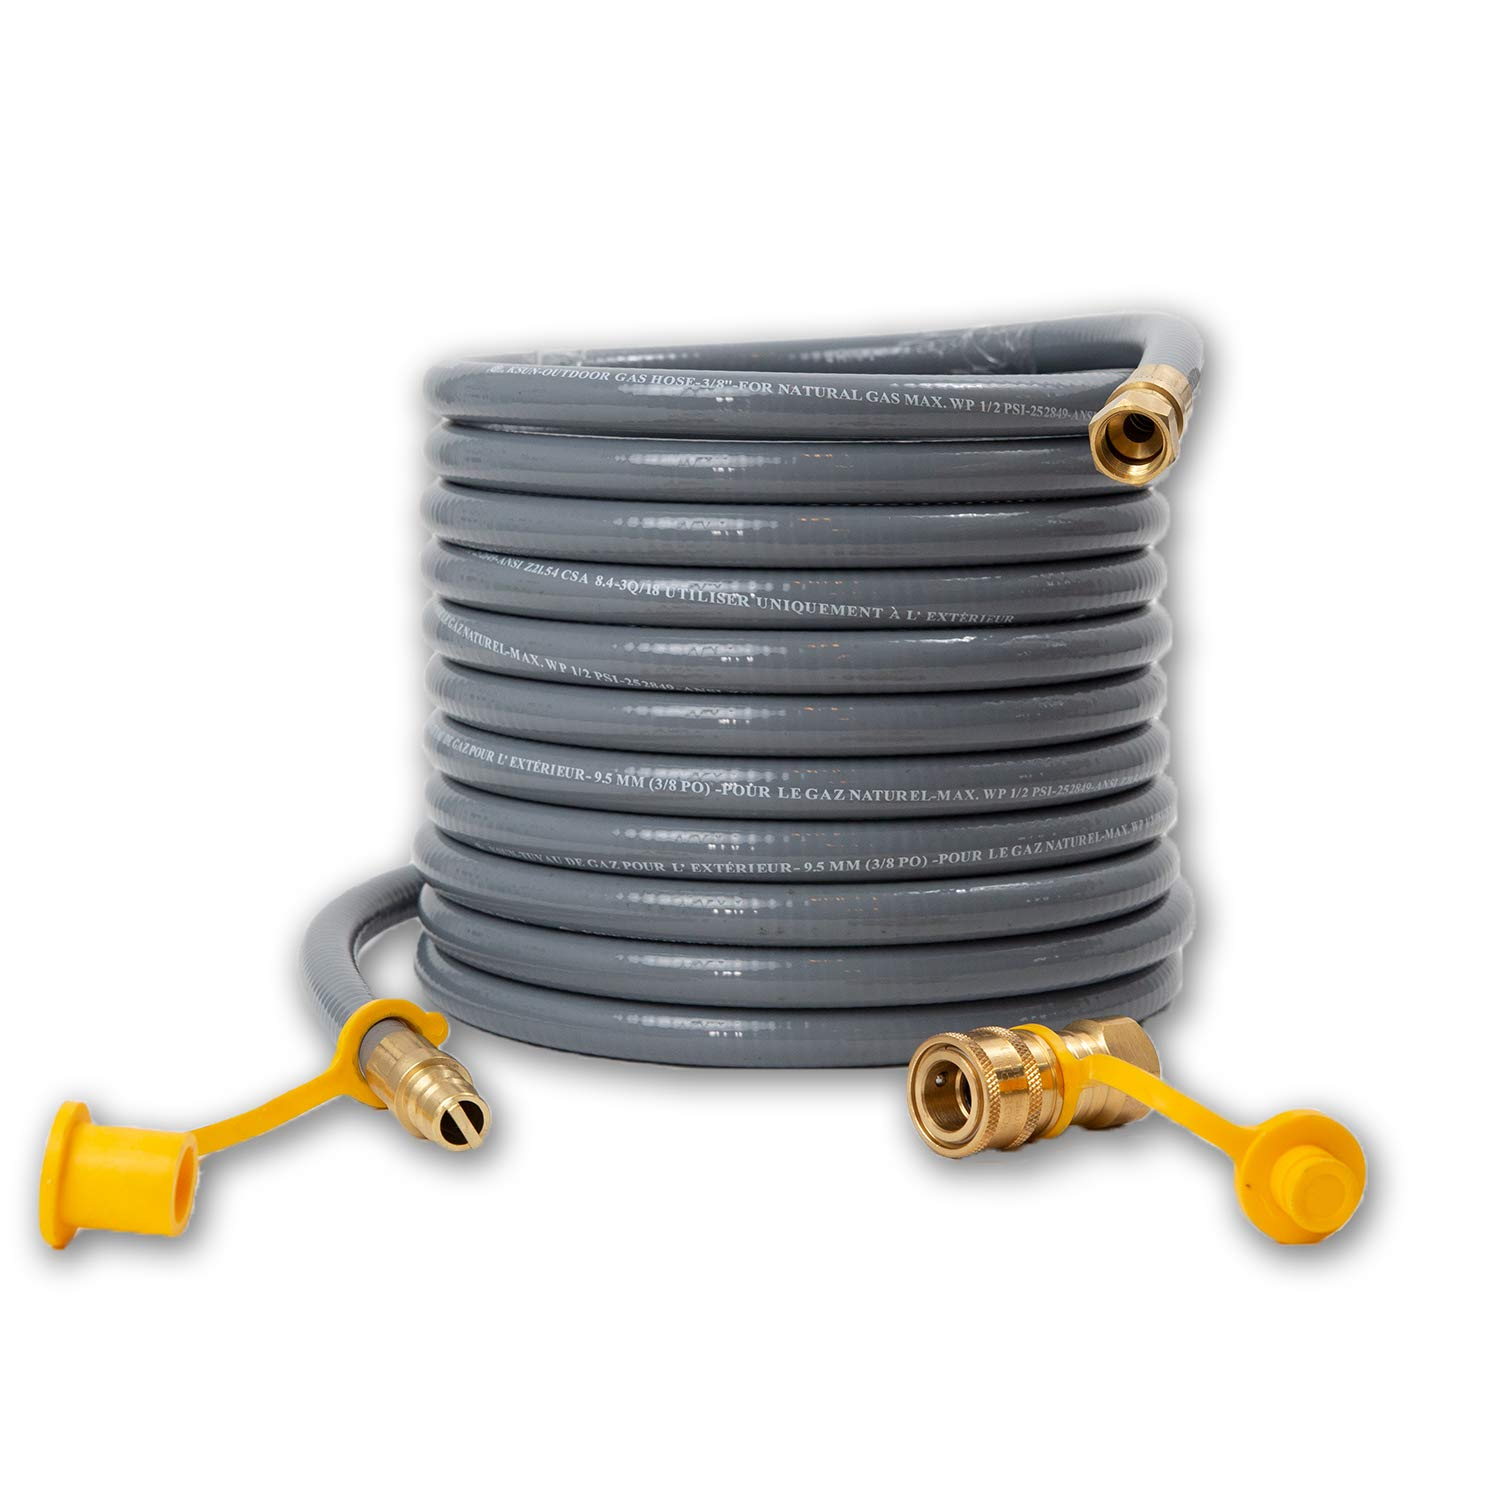 Houseables Propane Hose, Natural Gas Replacement, 3/8 Inch Outlet, 24 Feet, 50000 BTU/Hour, for Barbeque Grill, Conversion Kit, Quick Disconnect, Flexible Line, Home, Outdoor, Regulator, Fittings by Houseables